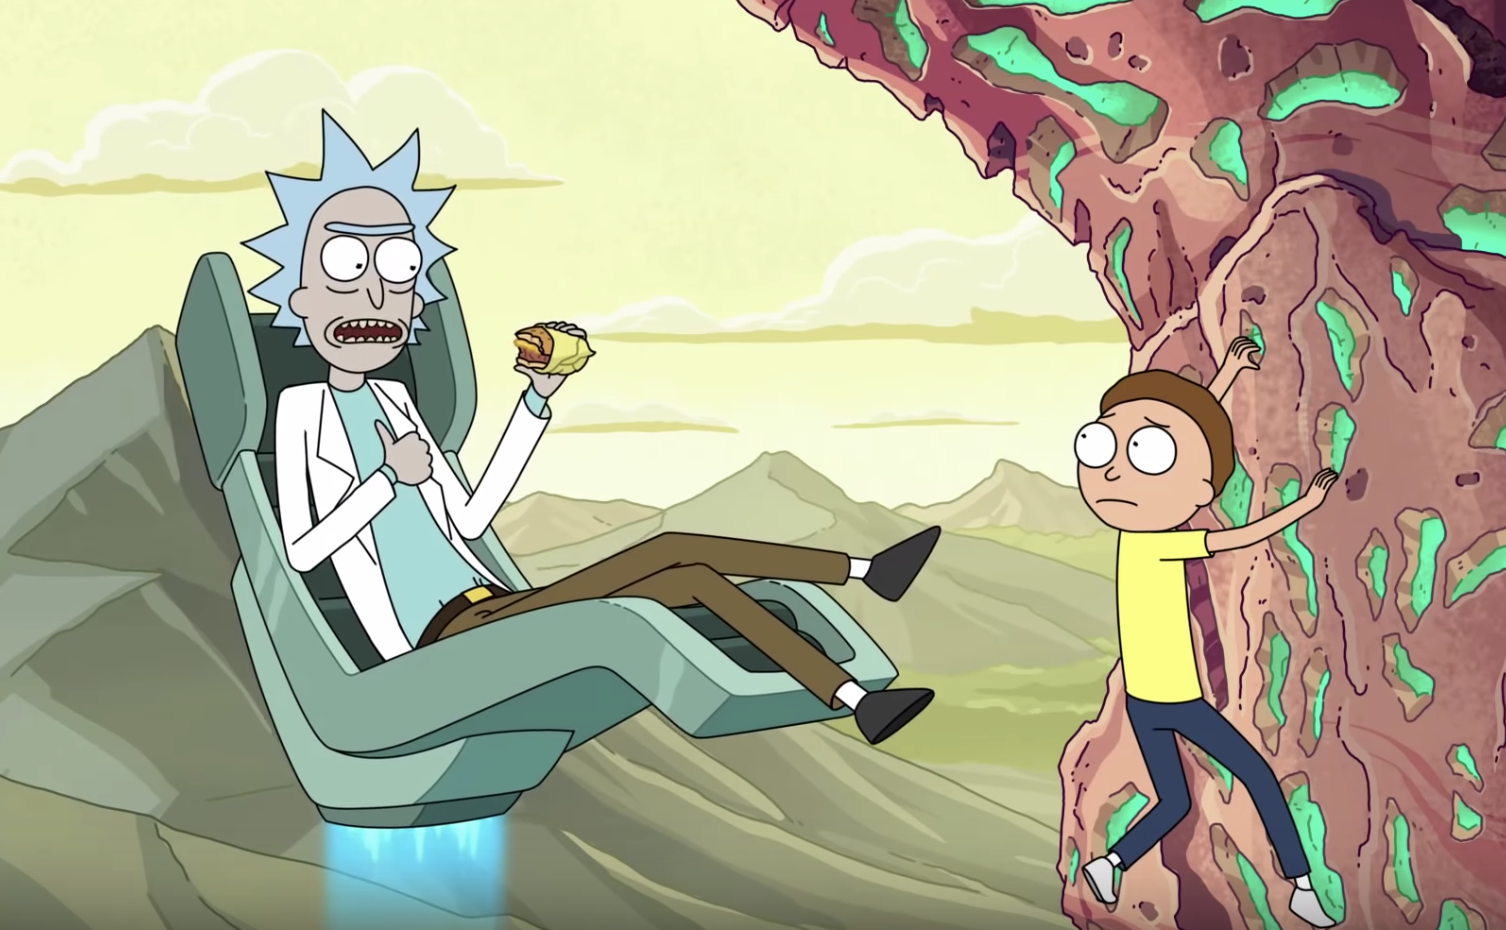 Rick and Morty season 4 finally has a release date – watch the first-look trailer